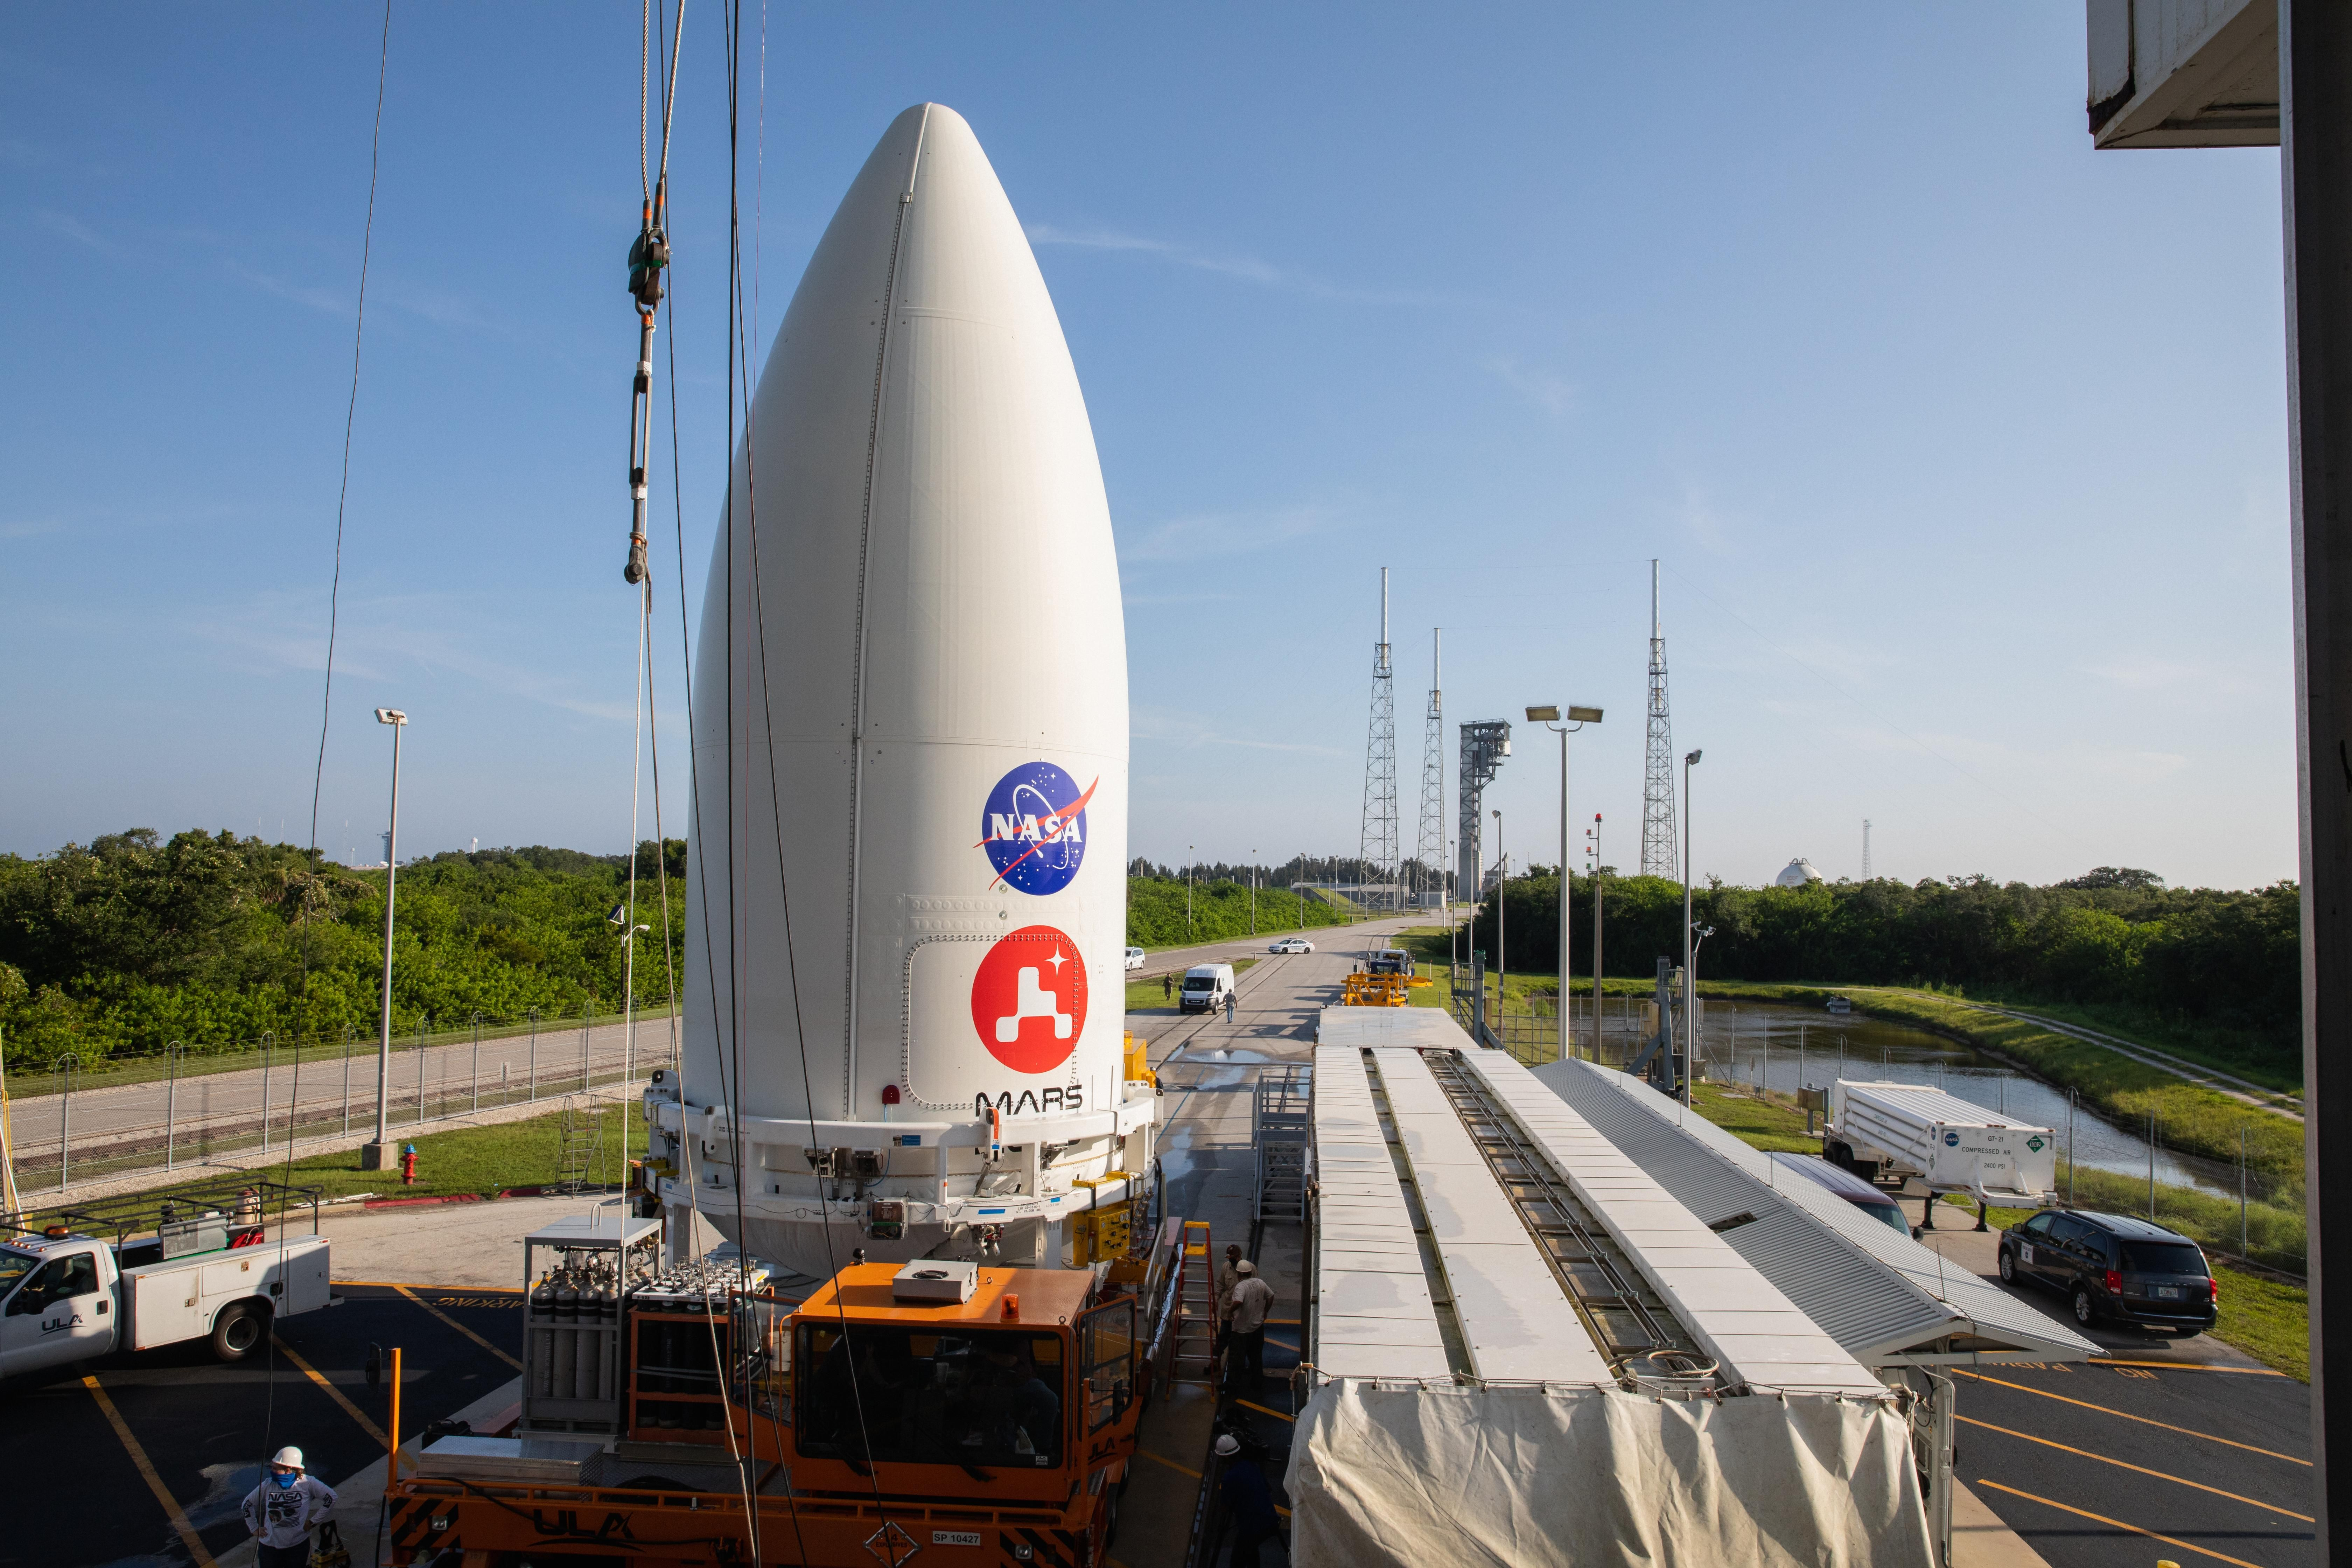 NASA's Perseverance Rover Is All Packed Up and Ready for Launch